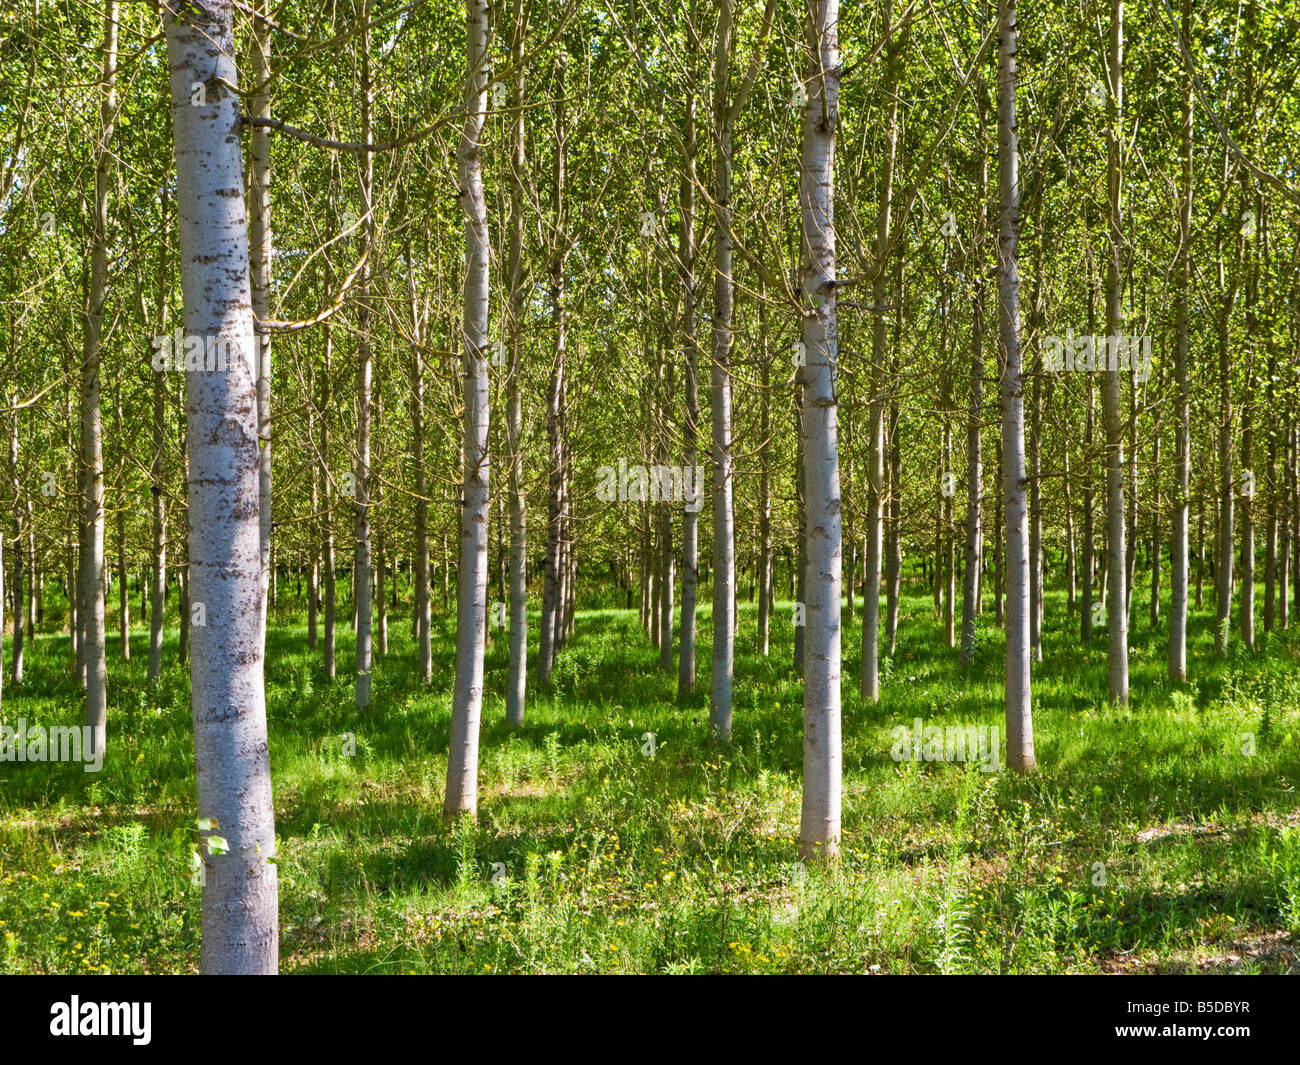 Sunlight through a managed forest of Silver Birch trees in Tarn et Garonne, Southwest France, Europe - Stock Image